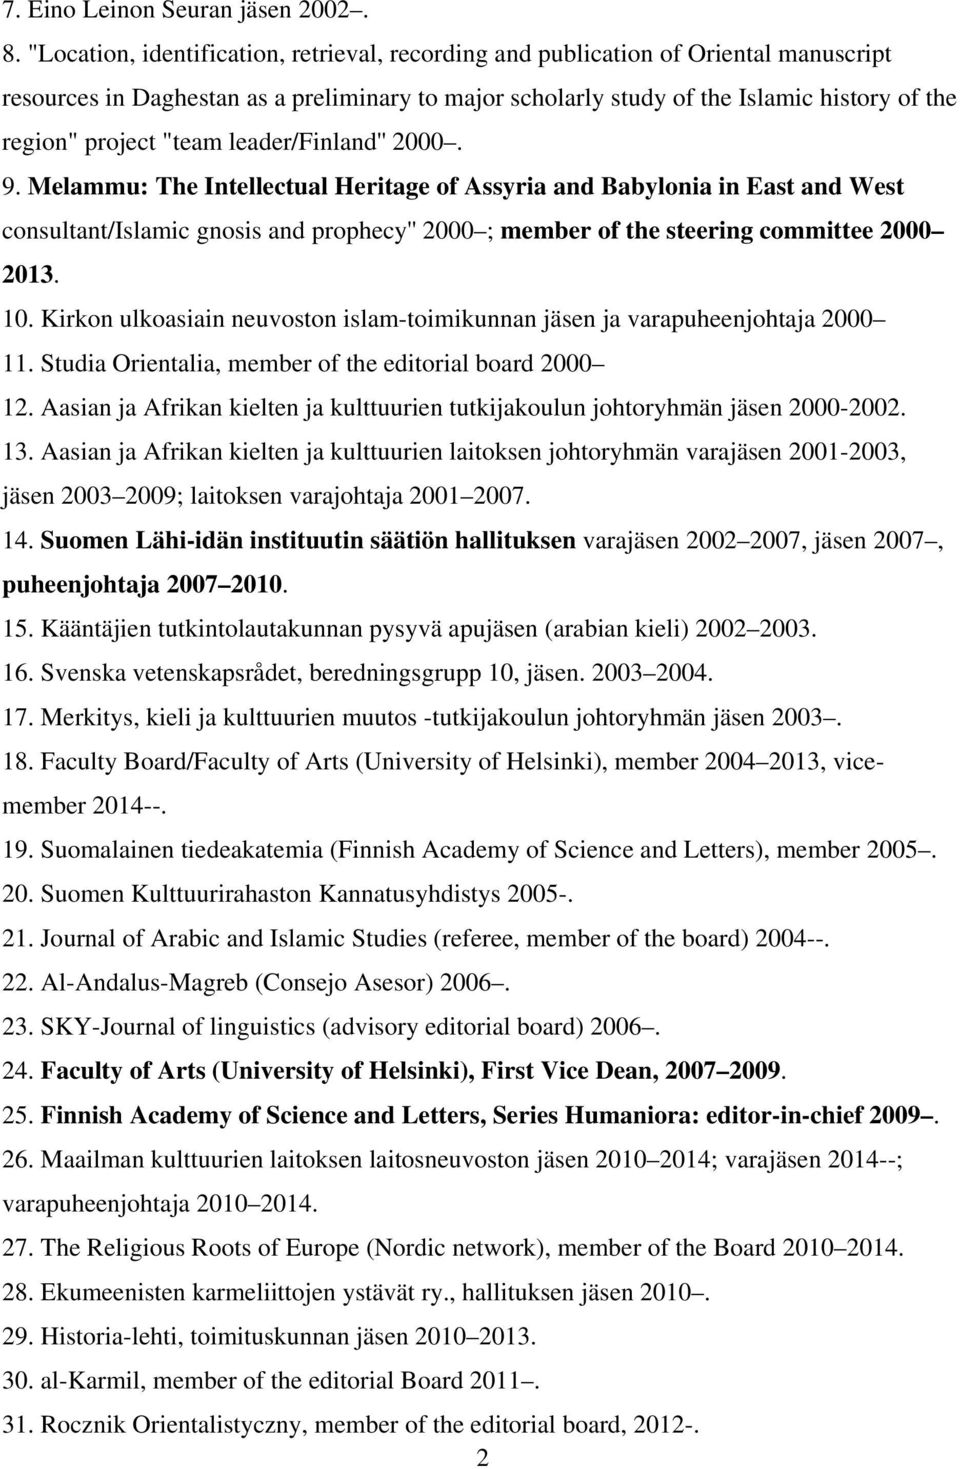 """team leader/finland'' 2000. 9. Melammu: The Intellectual Heritage of Assyria and Babylonia in East and West consultant/islamic gnosis and prophecy'' 2000 ; member of the steering committee 2000 2013."